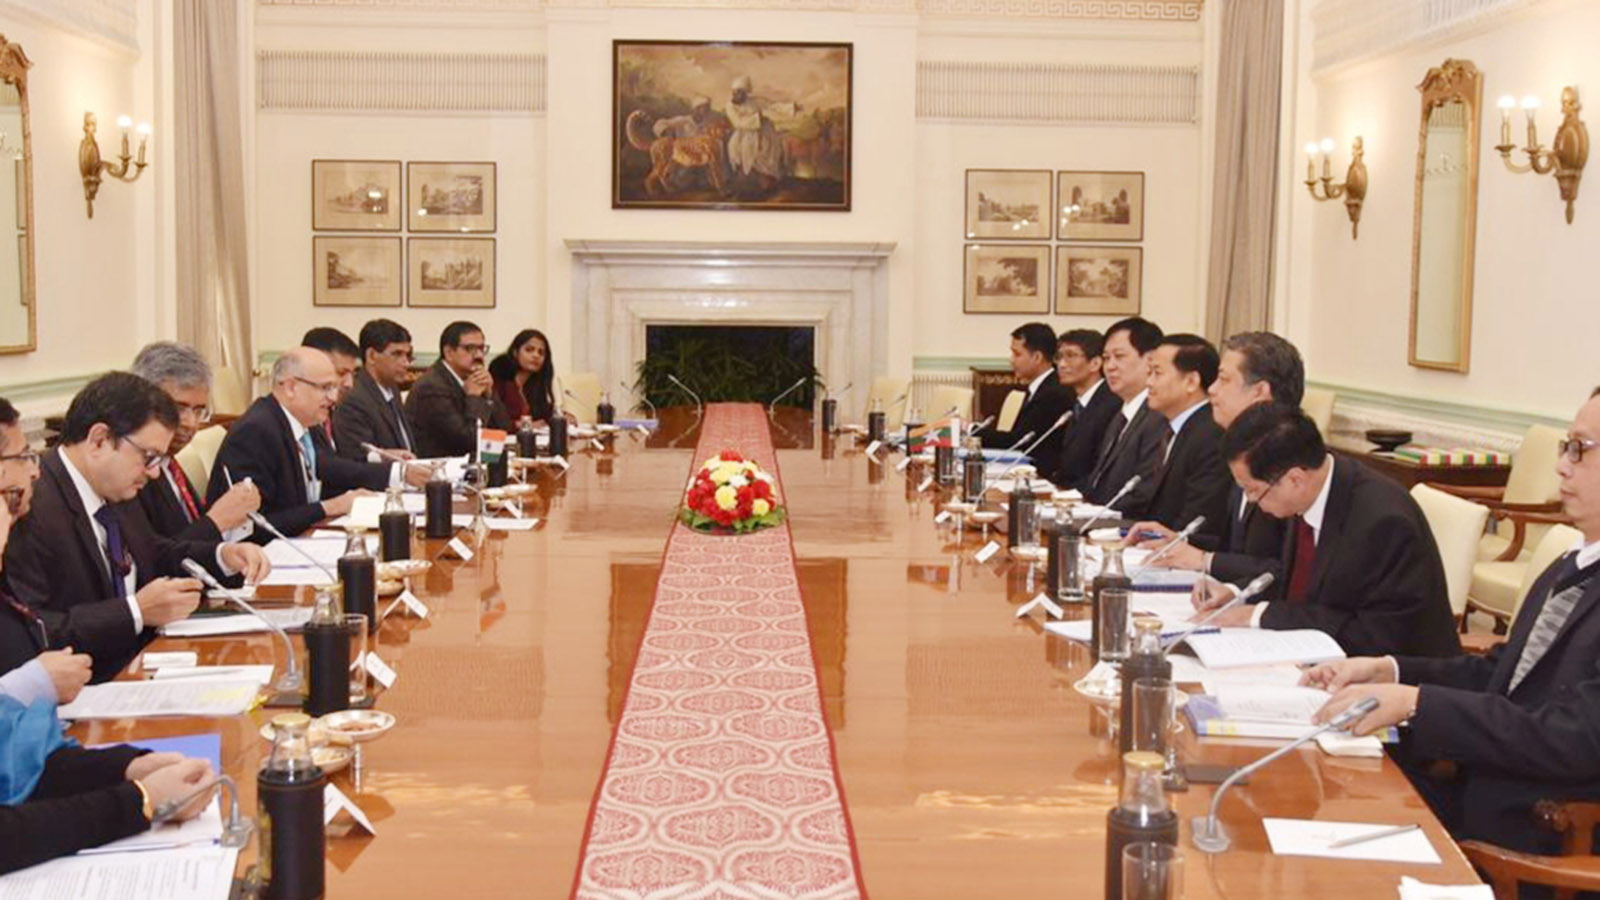 Permanent Secretary of the Ministry of Foreign Affairs U Soe Han and Foreign Secretary of the Ministry of External Affairs of India Mr Vijay Gokhale attend the 18th round of Myanmar-India Foreign Office Consultations (FOC) at the Hyderabad House in New Delhi on 6 December 2019.Photo: MNA